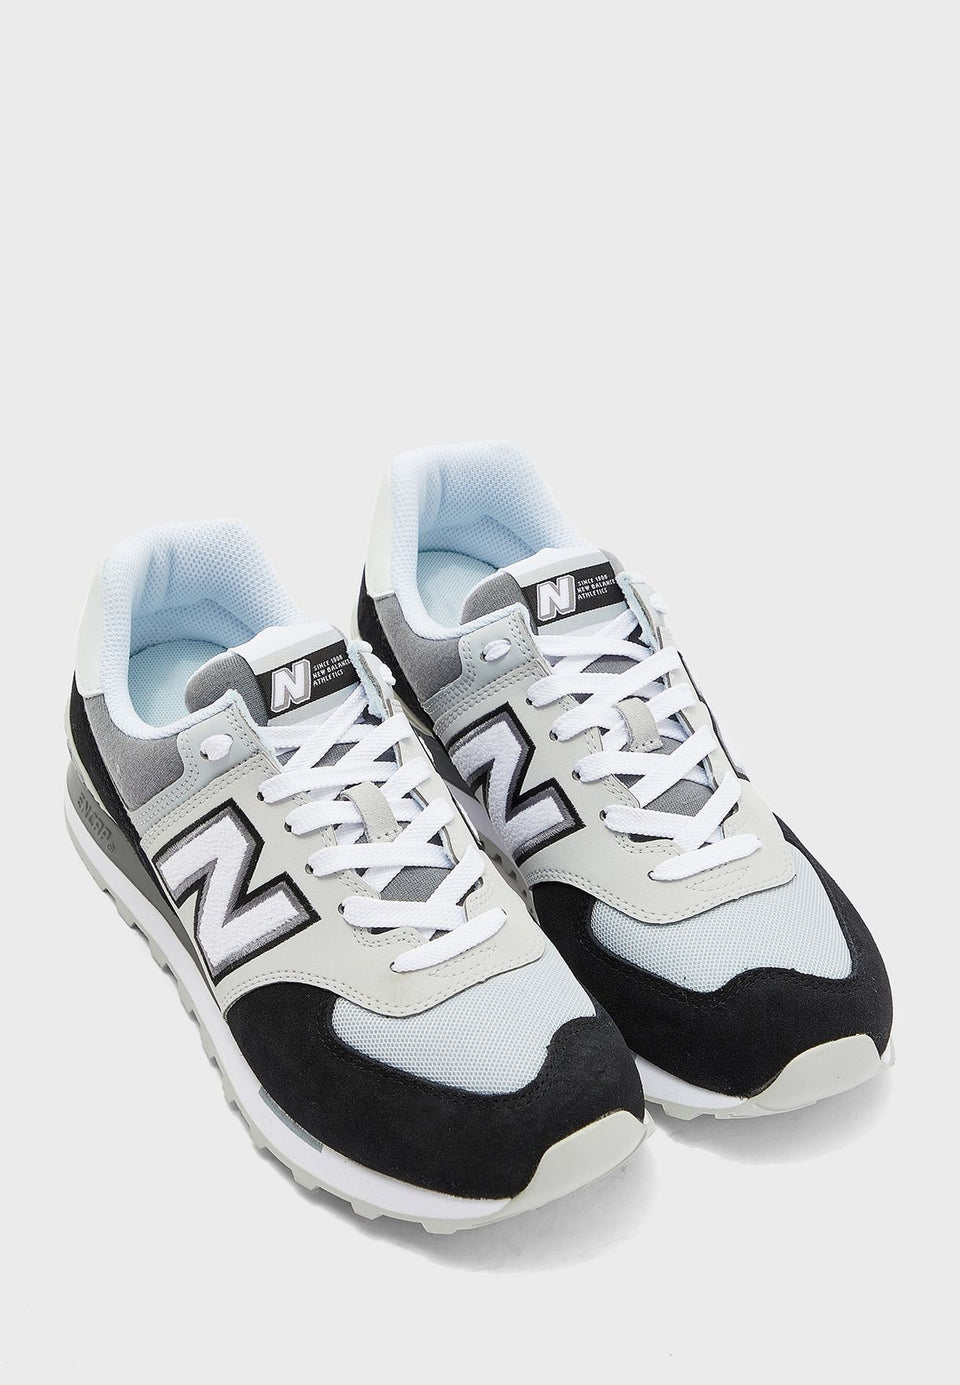 New Balance 574 Black with White - Stencil